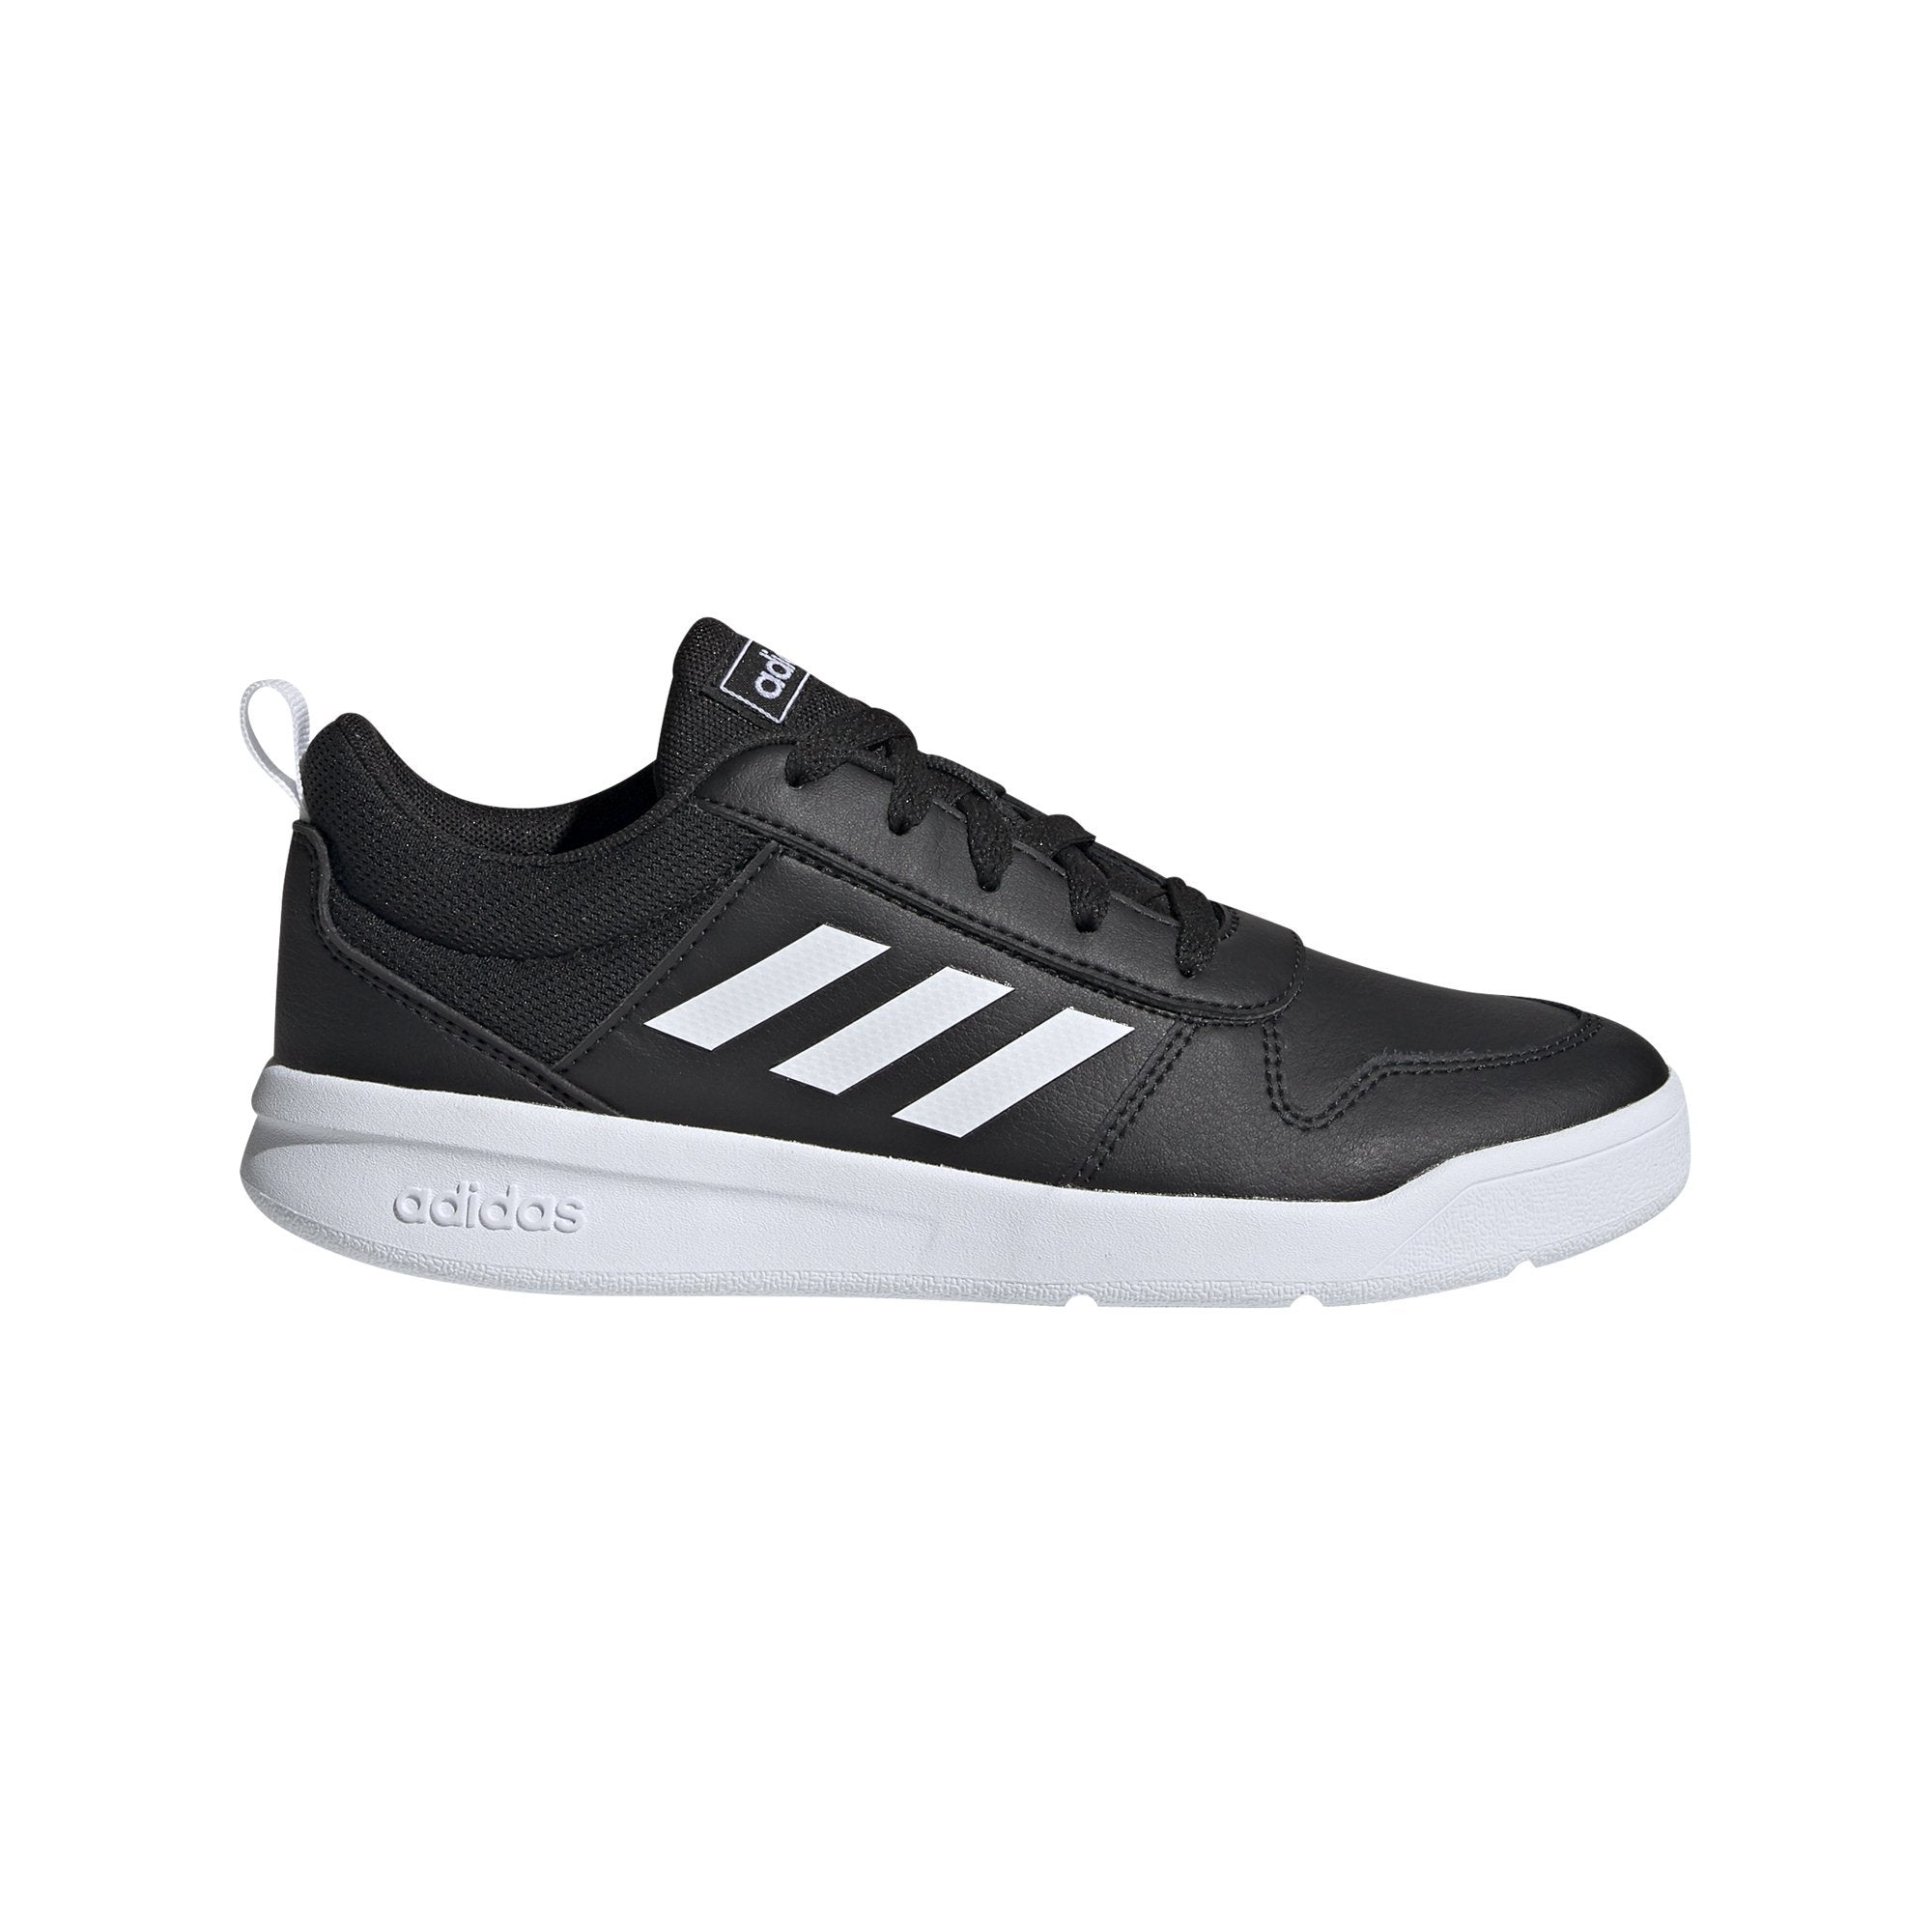 Adidas Kid's Tensaur K - Core Black/Ftwr White/Core Black SP-Footwear-Kids Adidas